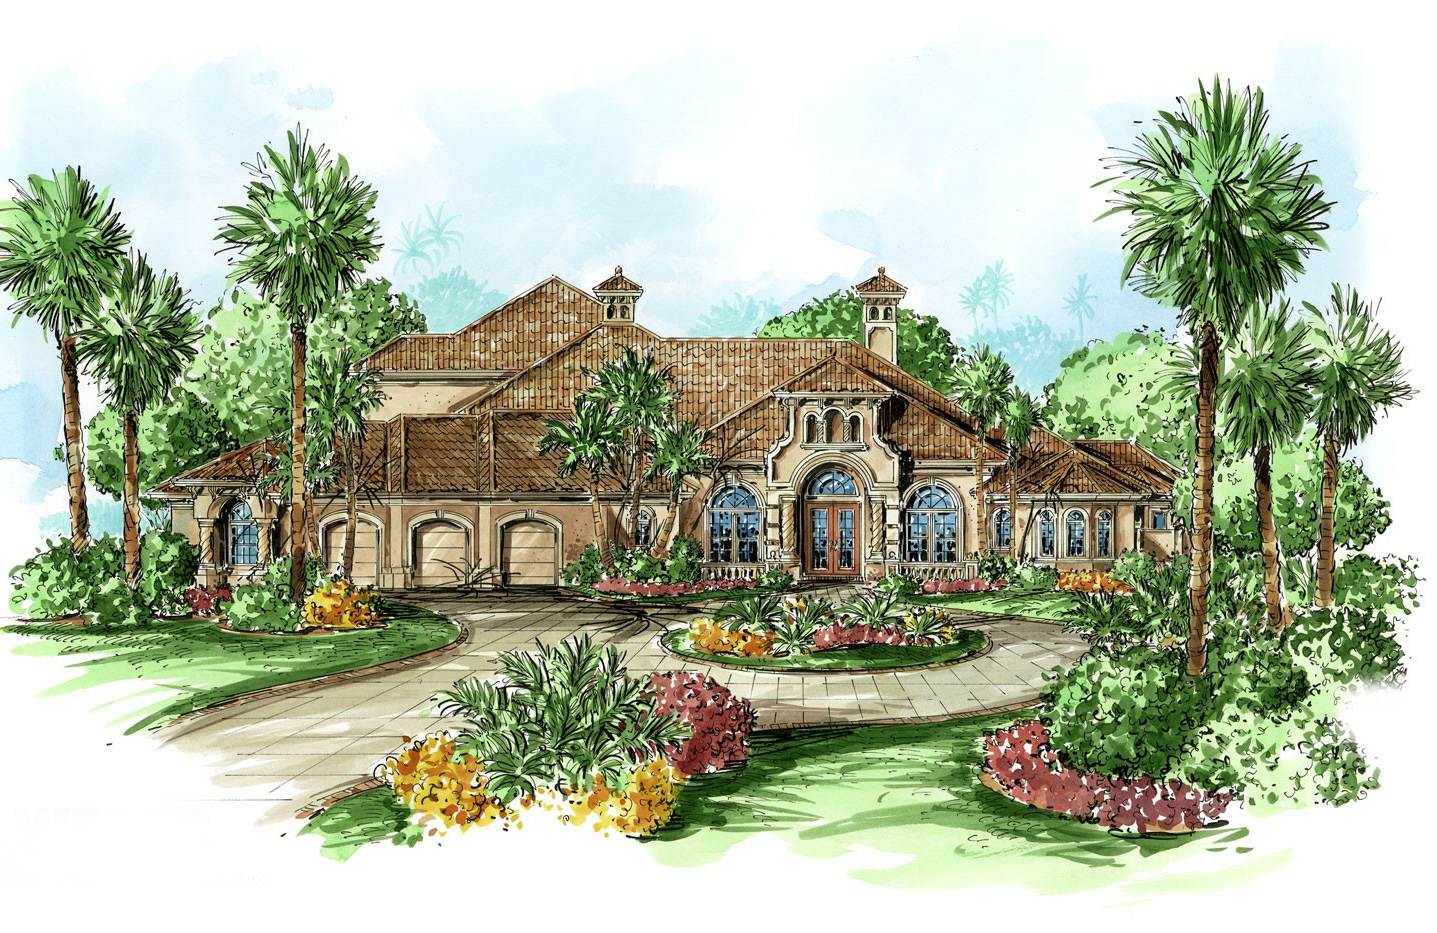 Home Design Plans: Award-Winning Mediterranean Dream Home